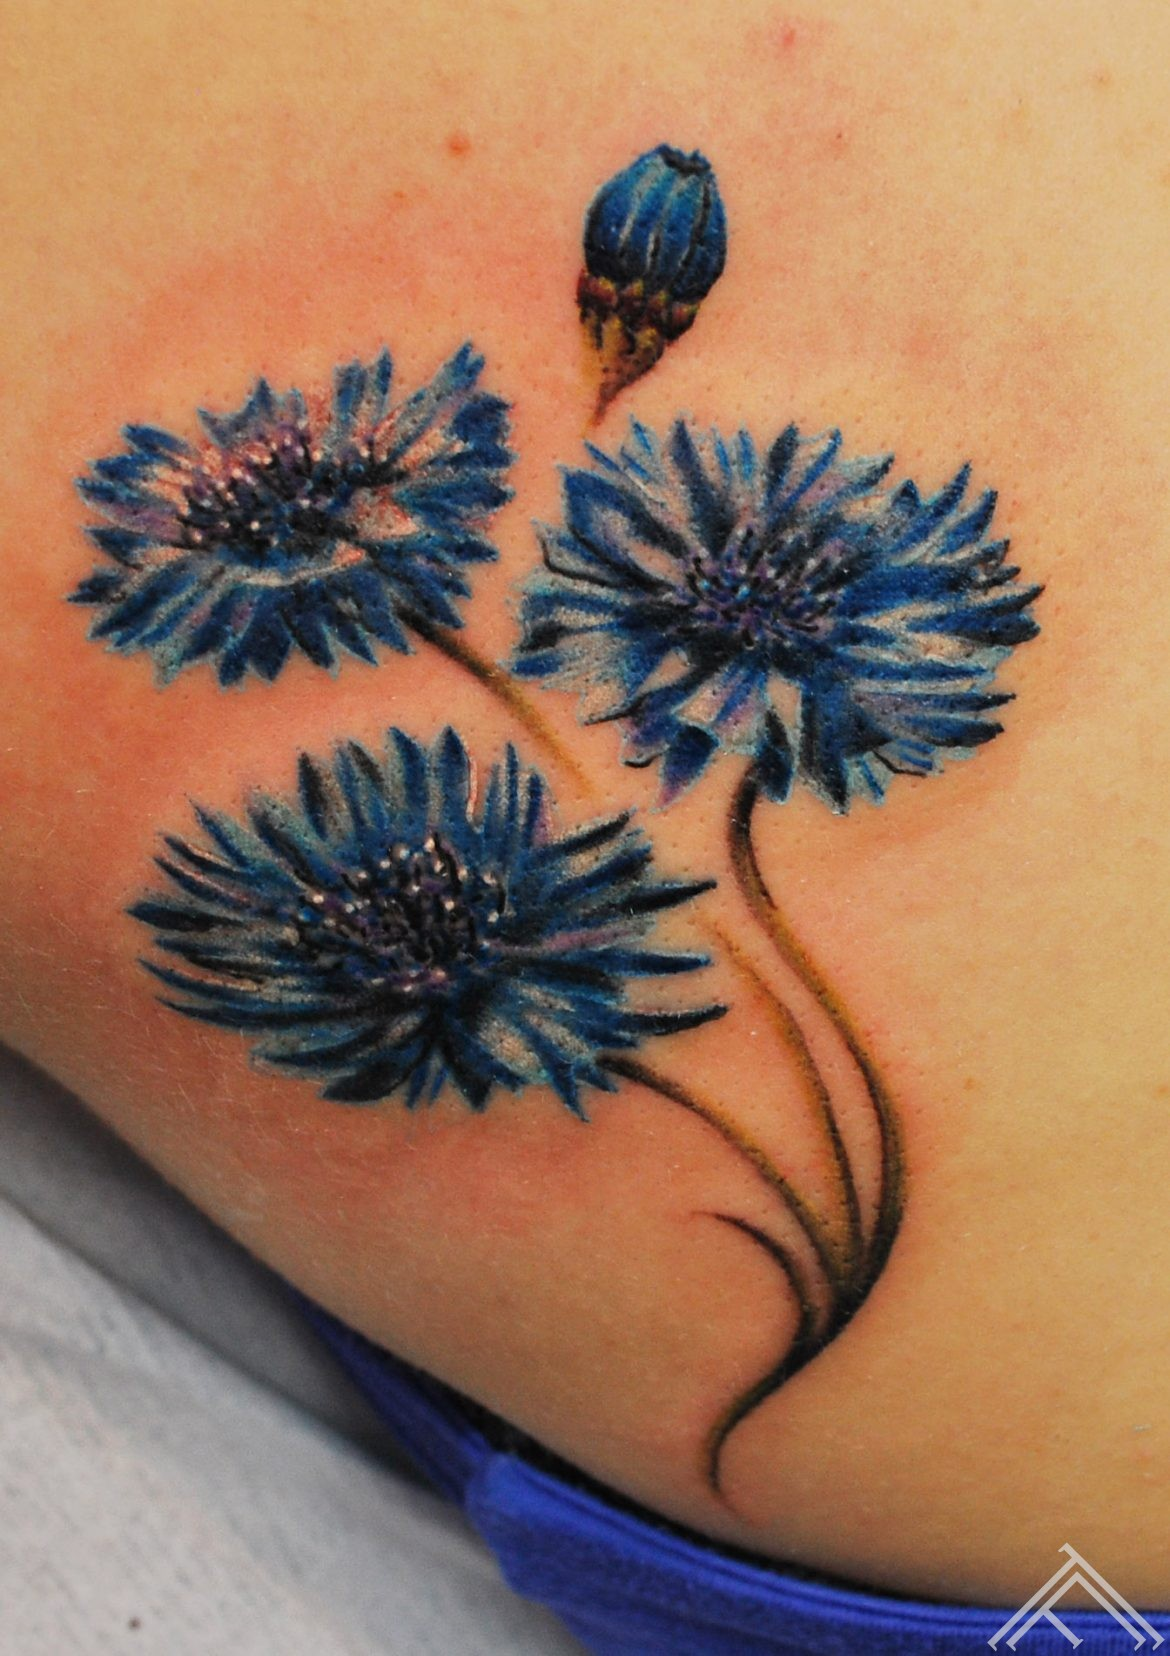 tattoo_cornflower_flower_blue_rigatattoo_studio_tattoofrequency